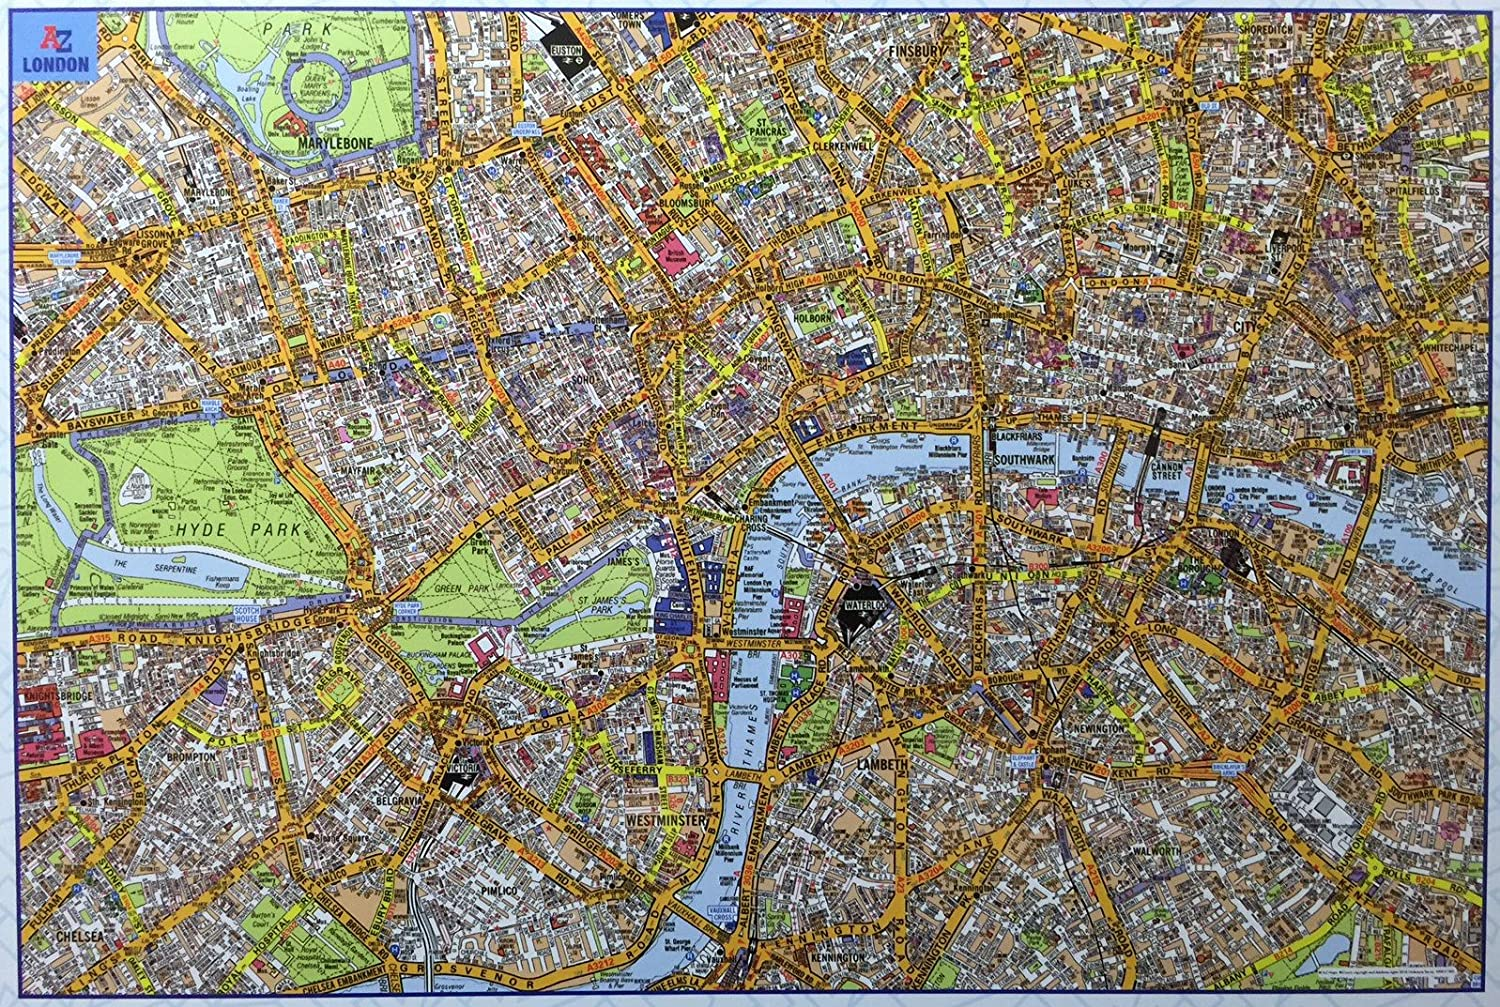 Map Of The City Of London.Amazon Com City Of London Map Jigsaw Puzzle 1000 Pieces Toys Games